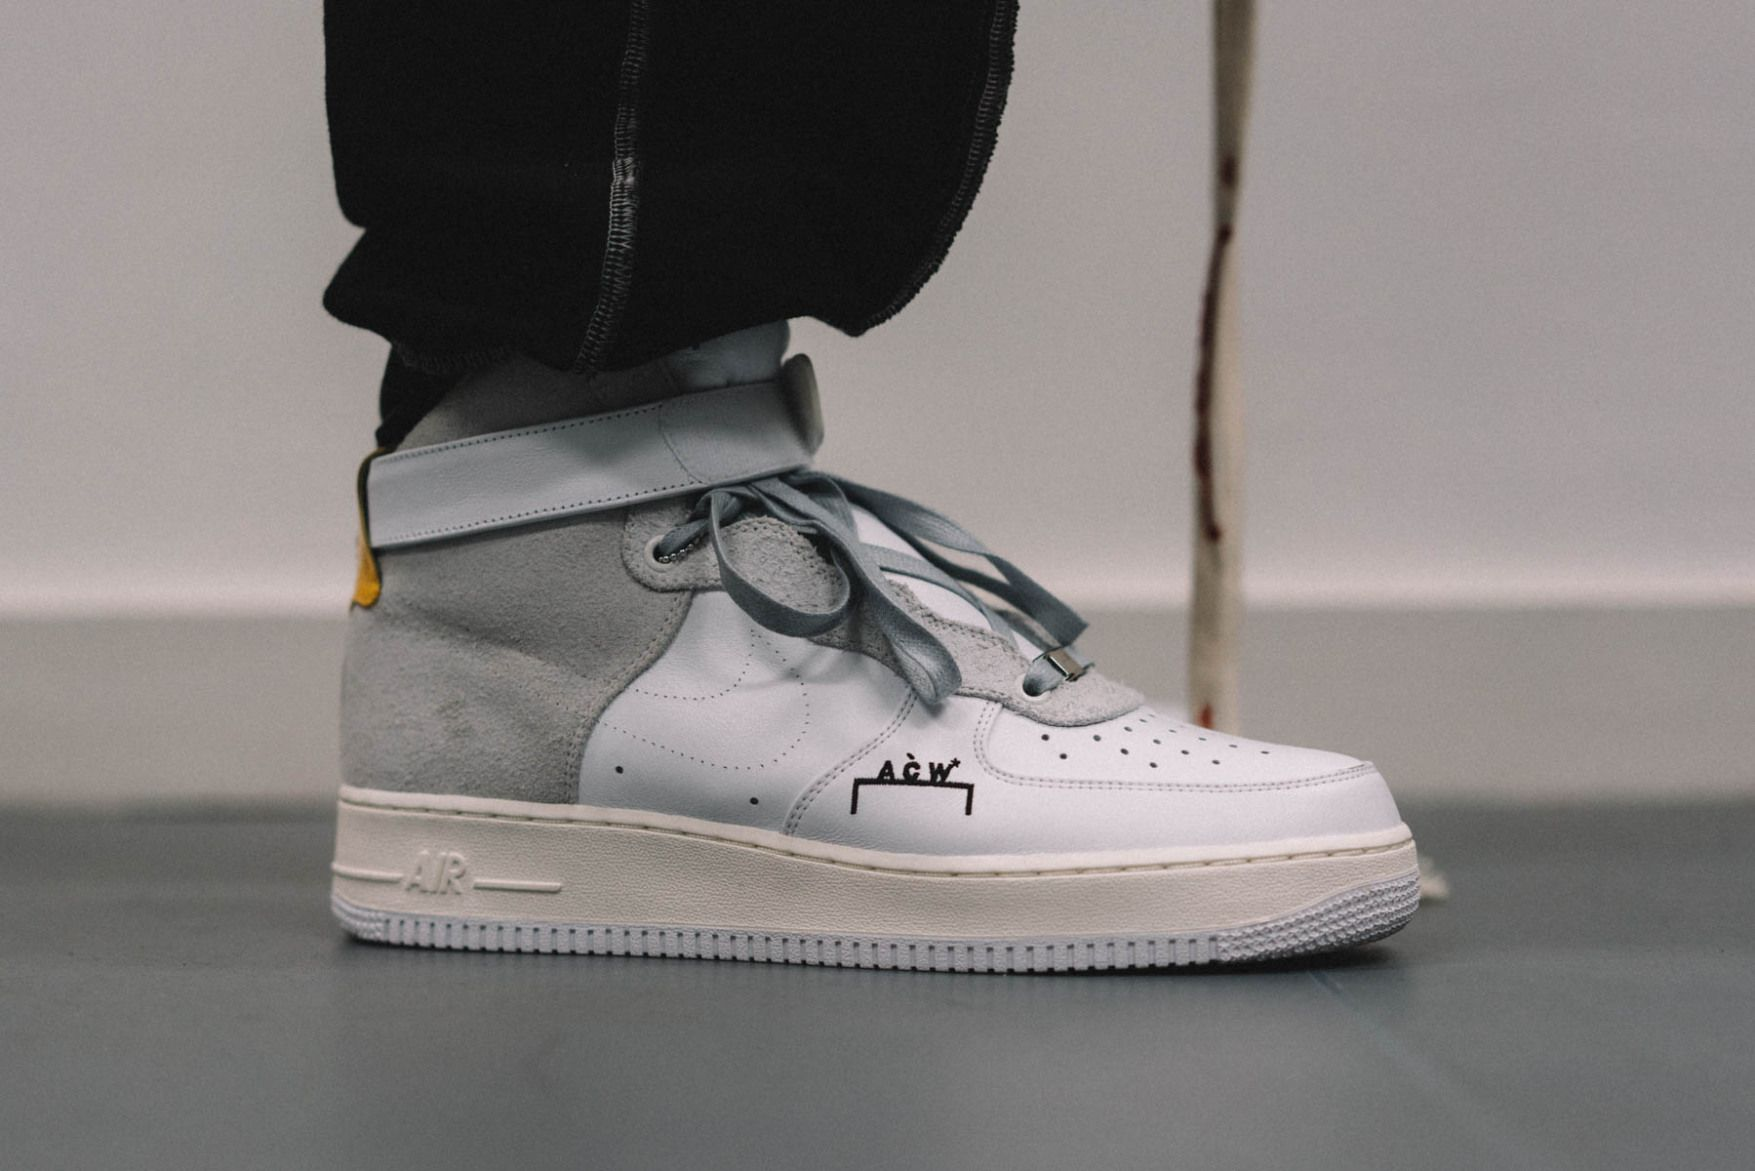 the best attitude a51d8 966e0 A-COLD-WALL x NikeLab Air Force 1 Custom Bespoke Sneaker